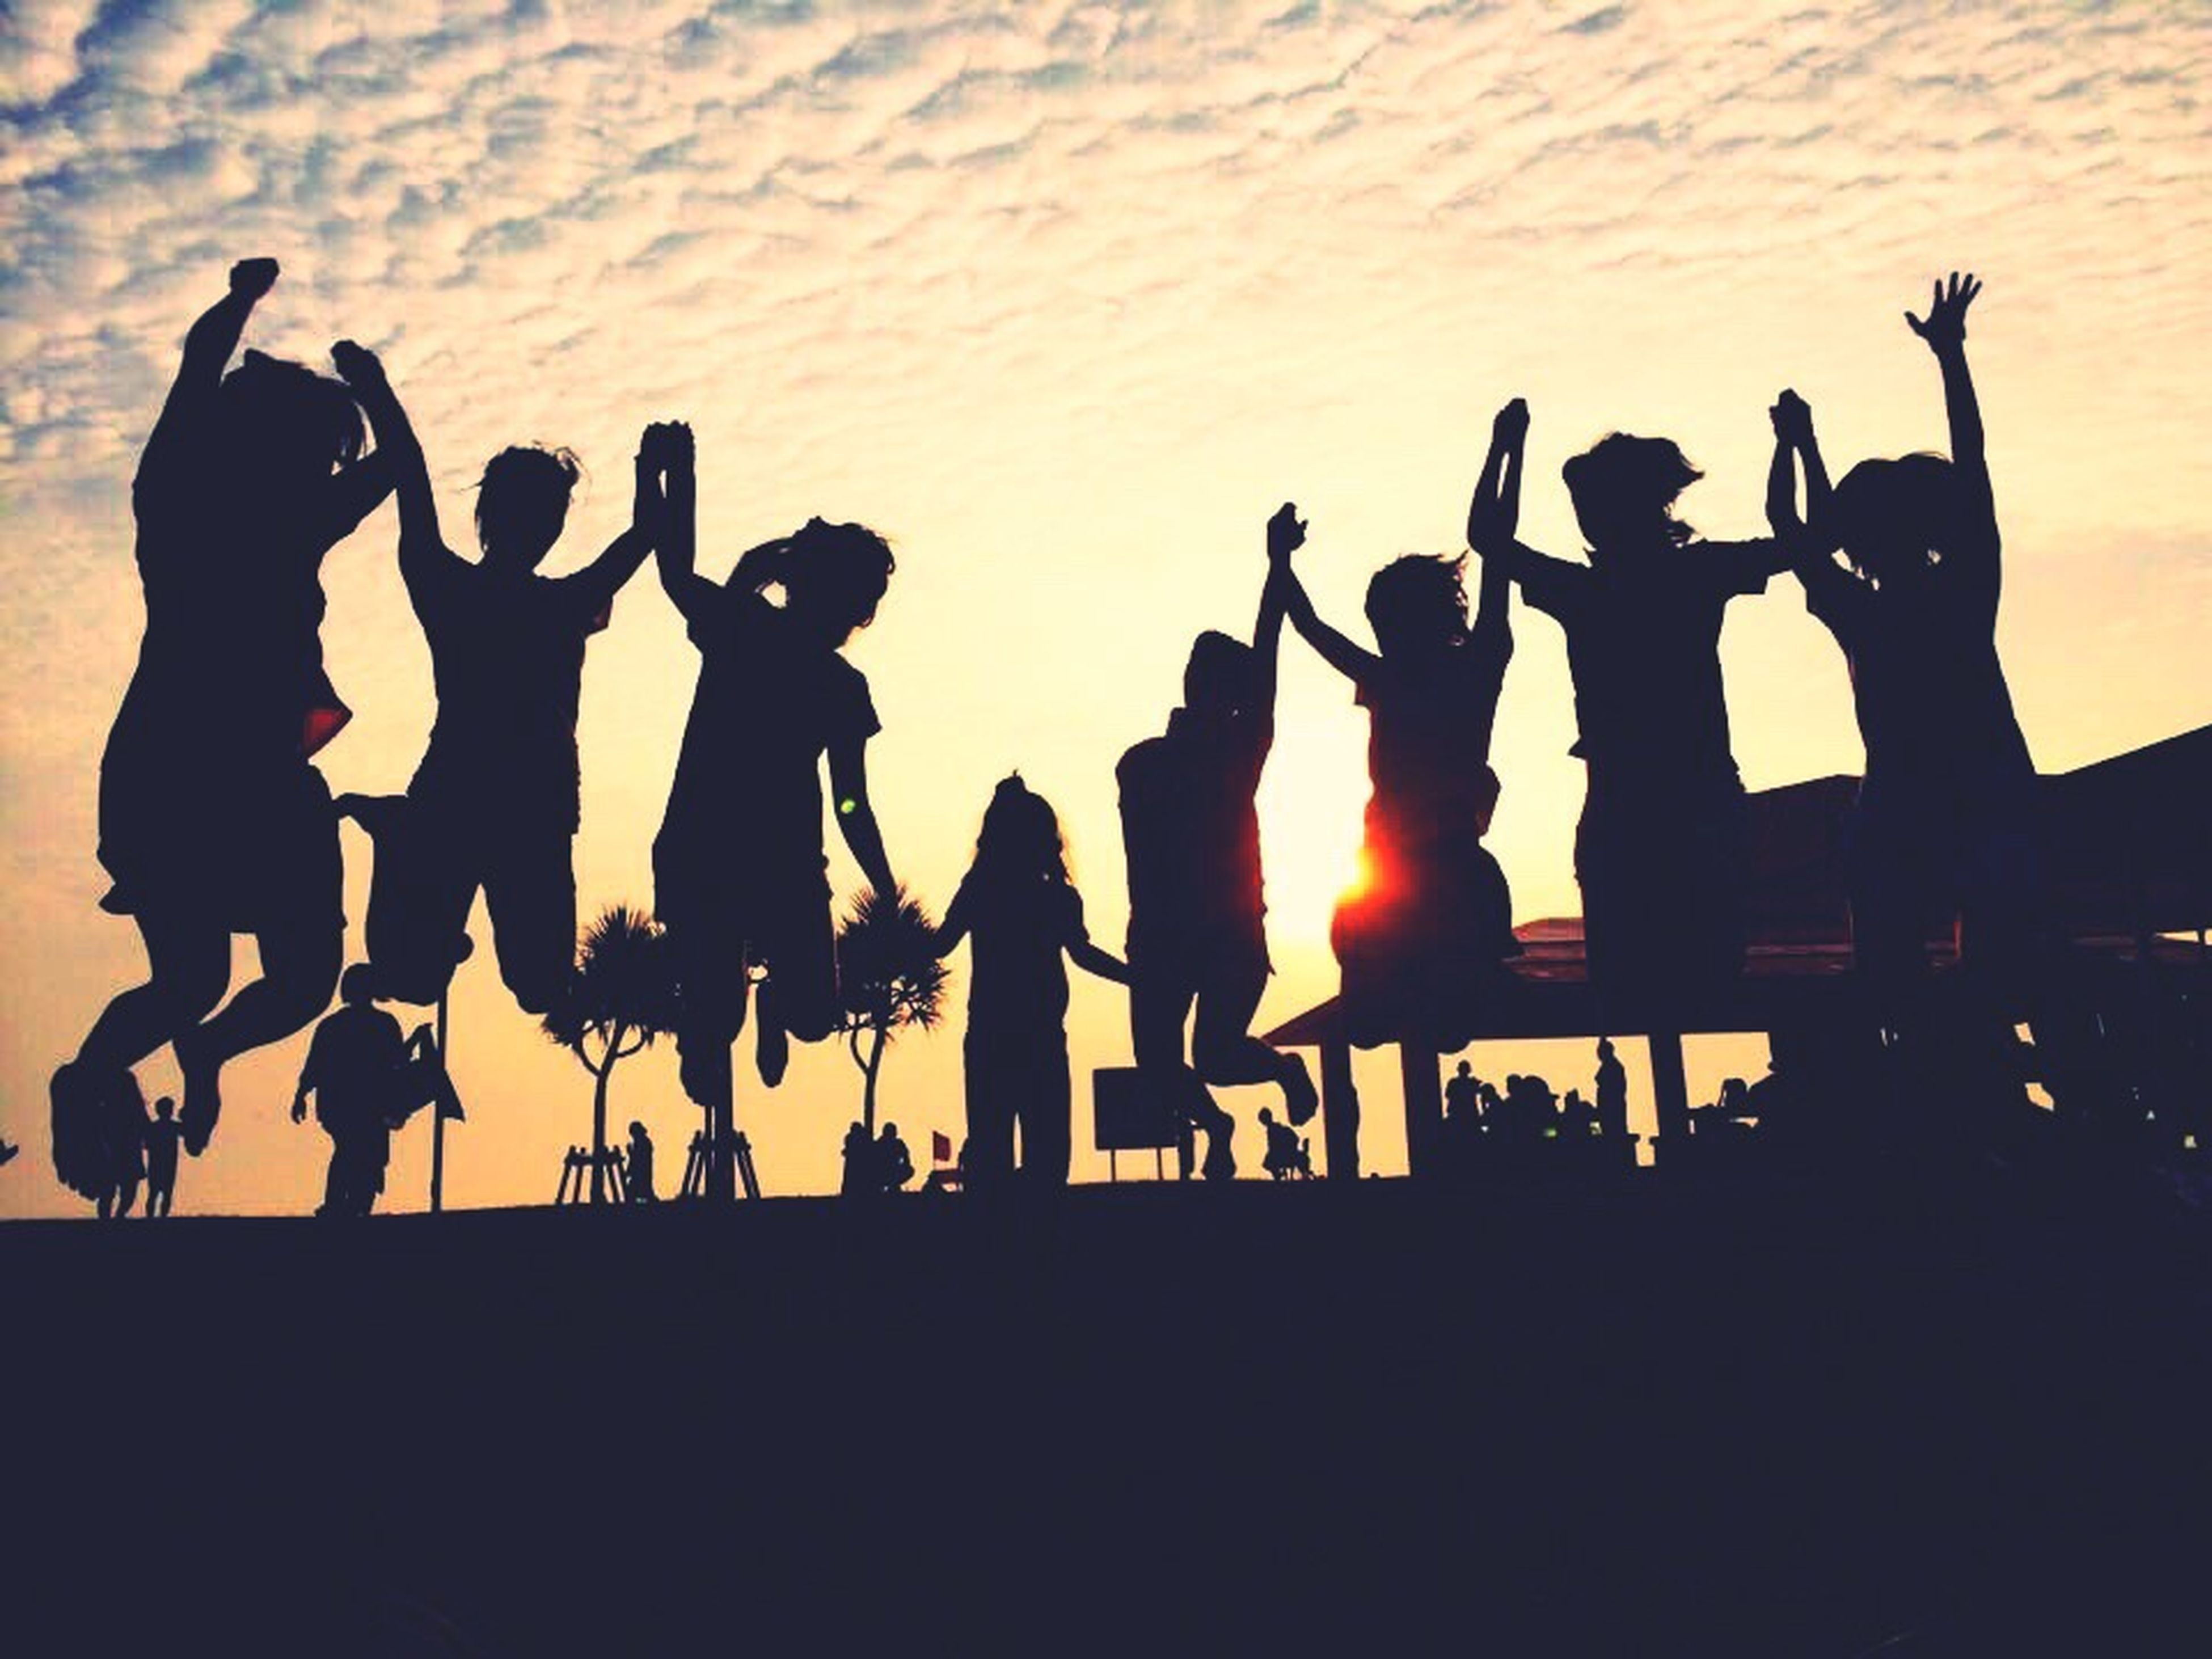 sunset, lifestyles, leisure activity, outdoors, orange color, outline, medium group of people, sky, side by side, enjoyment, sun, tourism